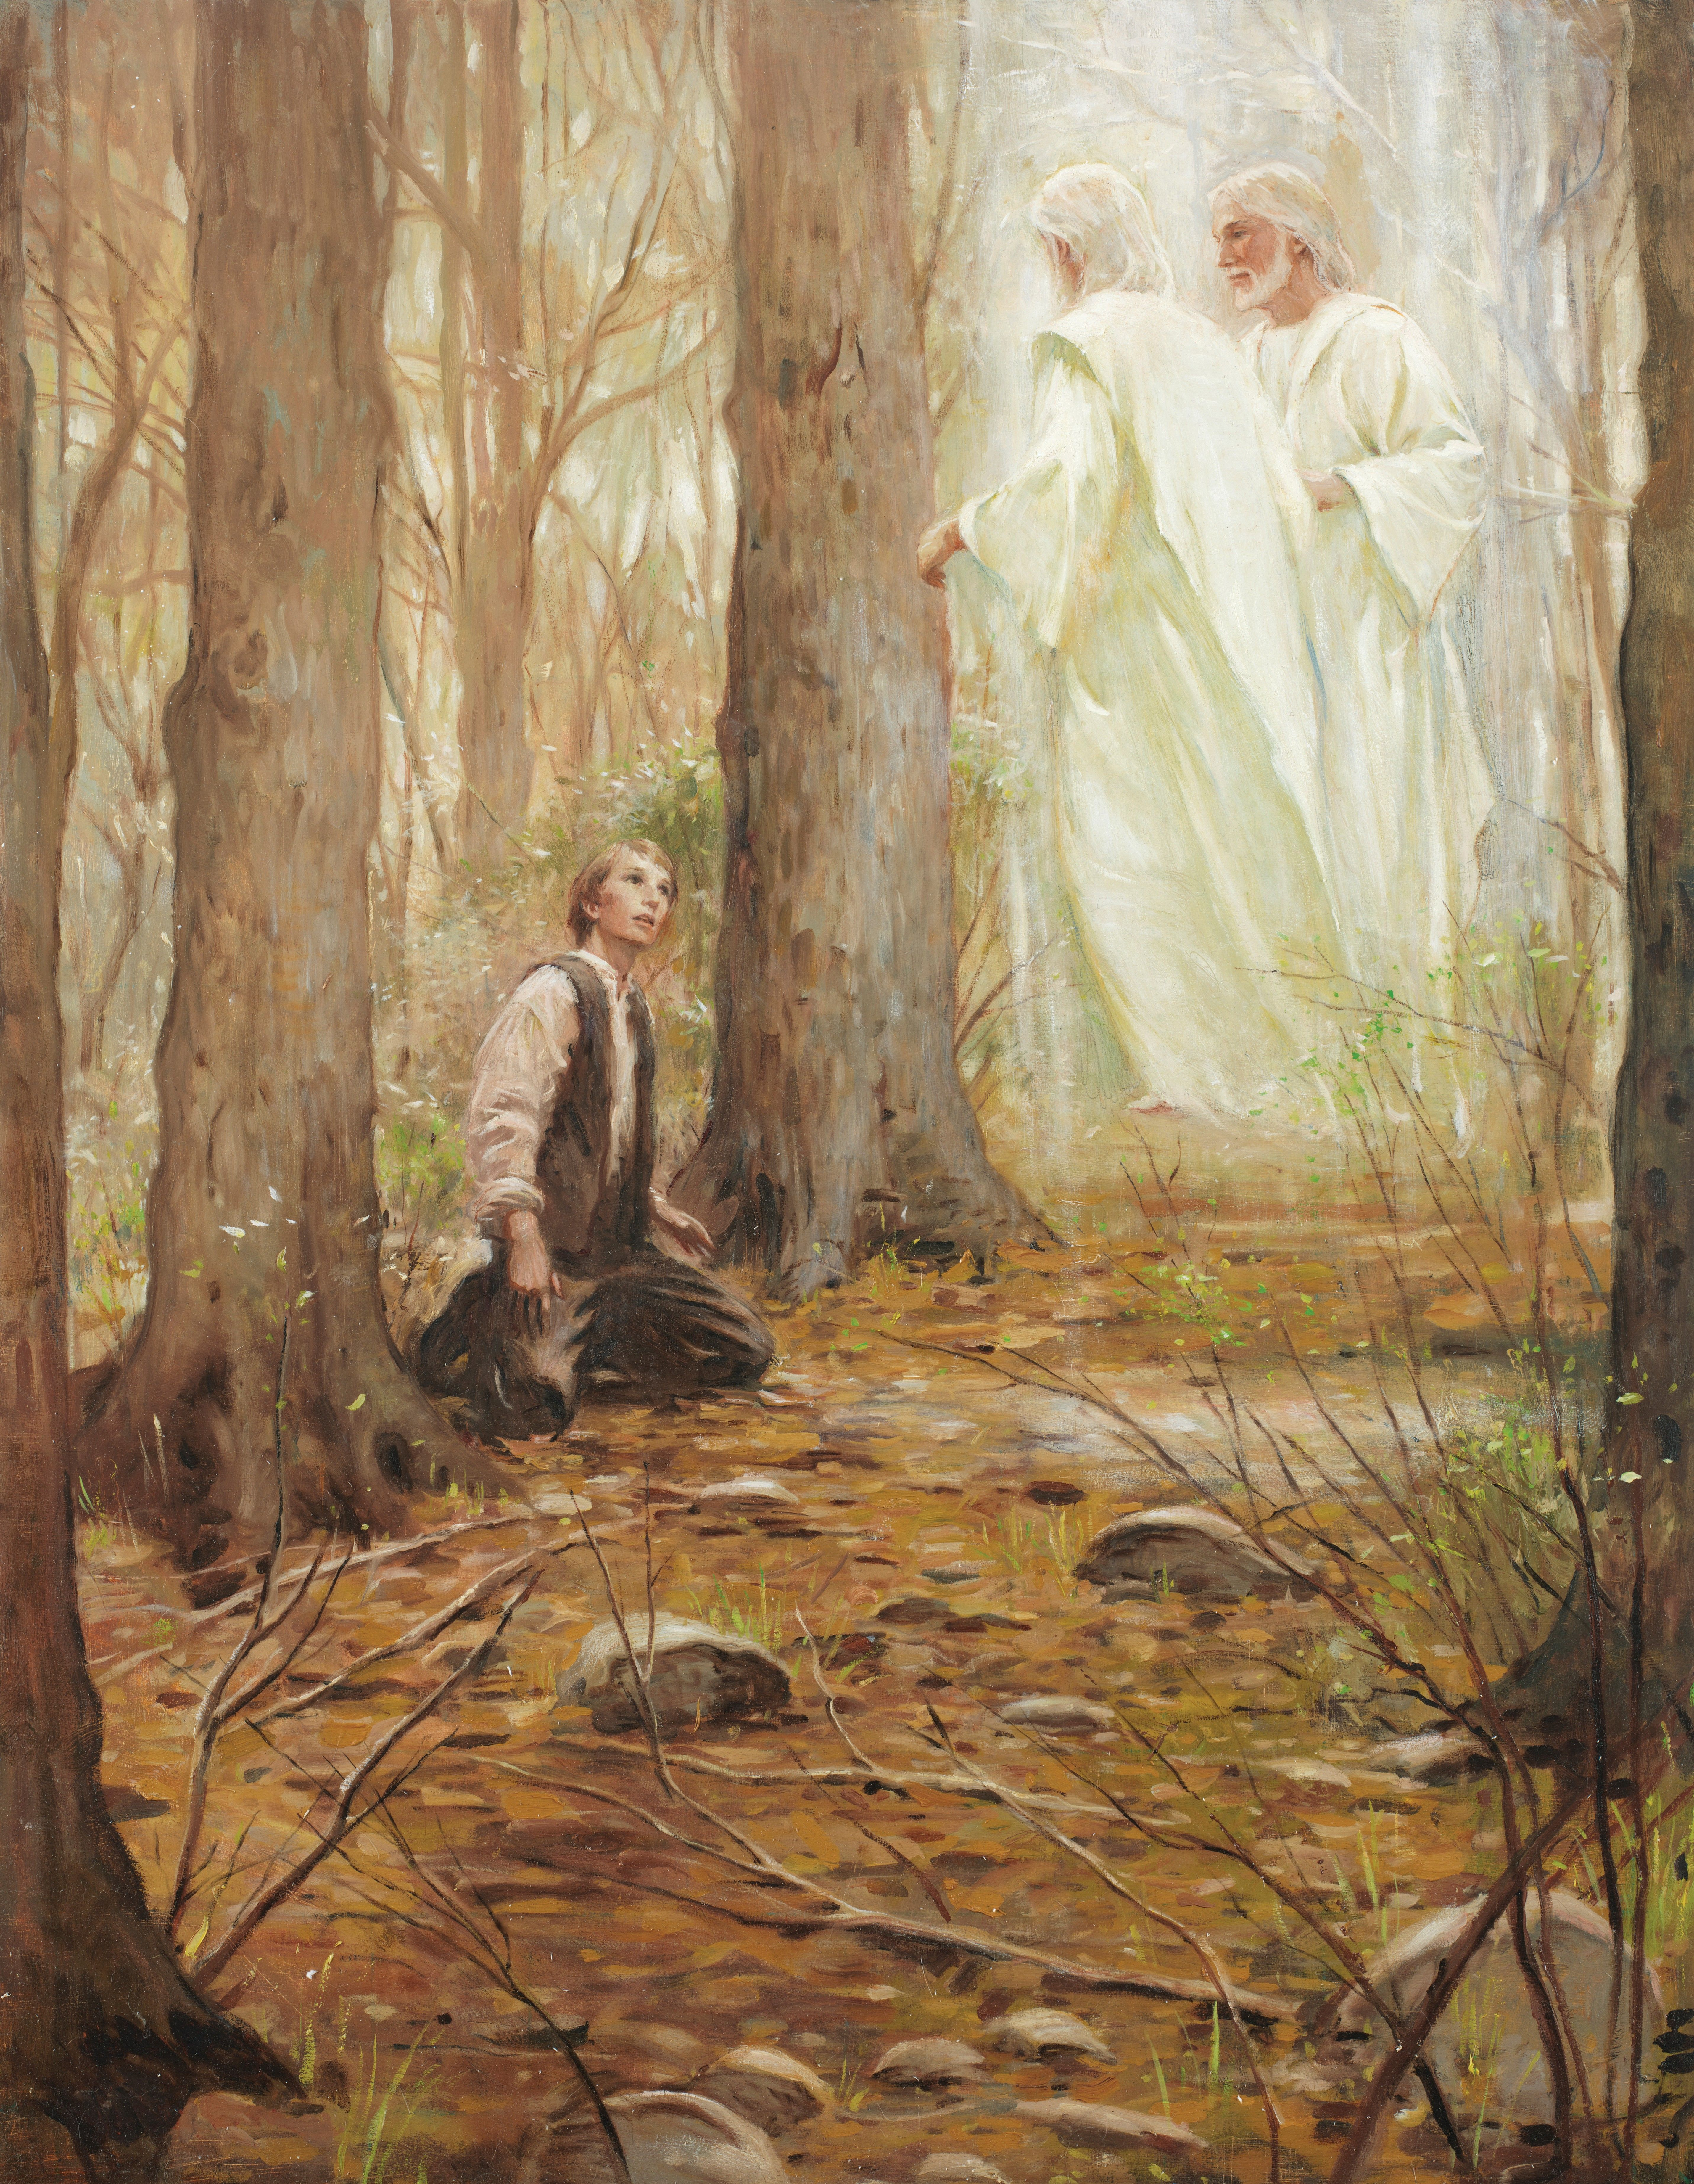 First Vision, by Walter Rane.